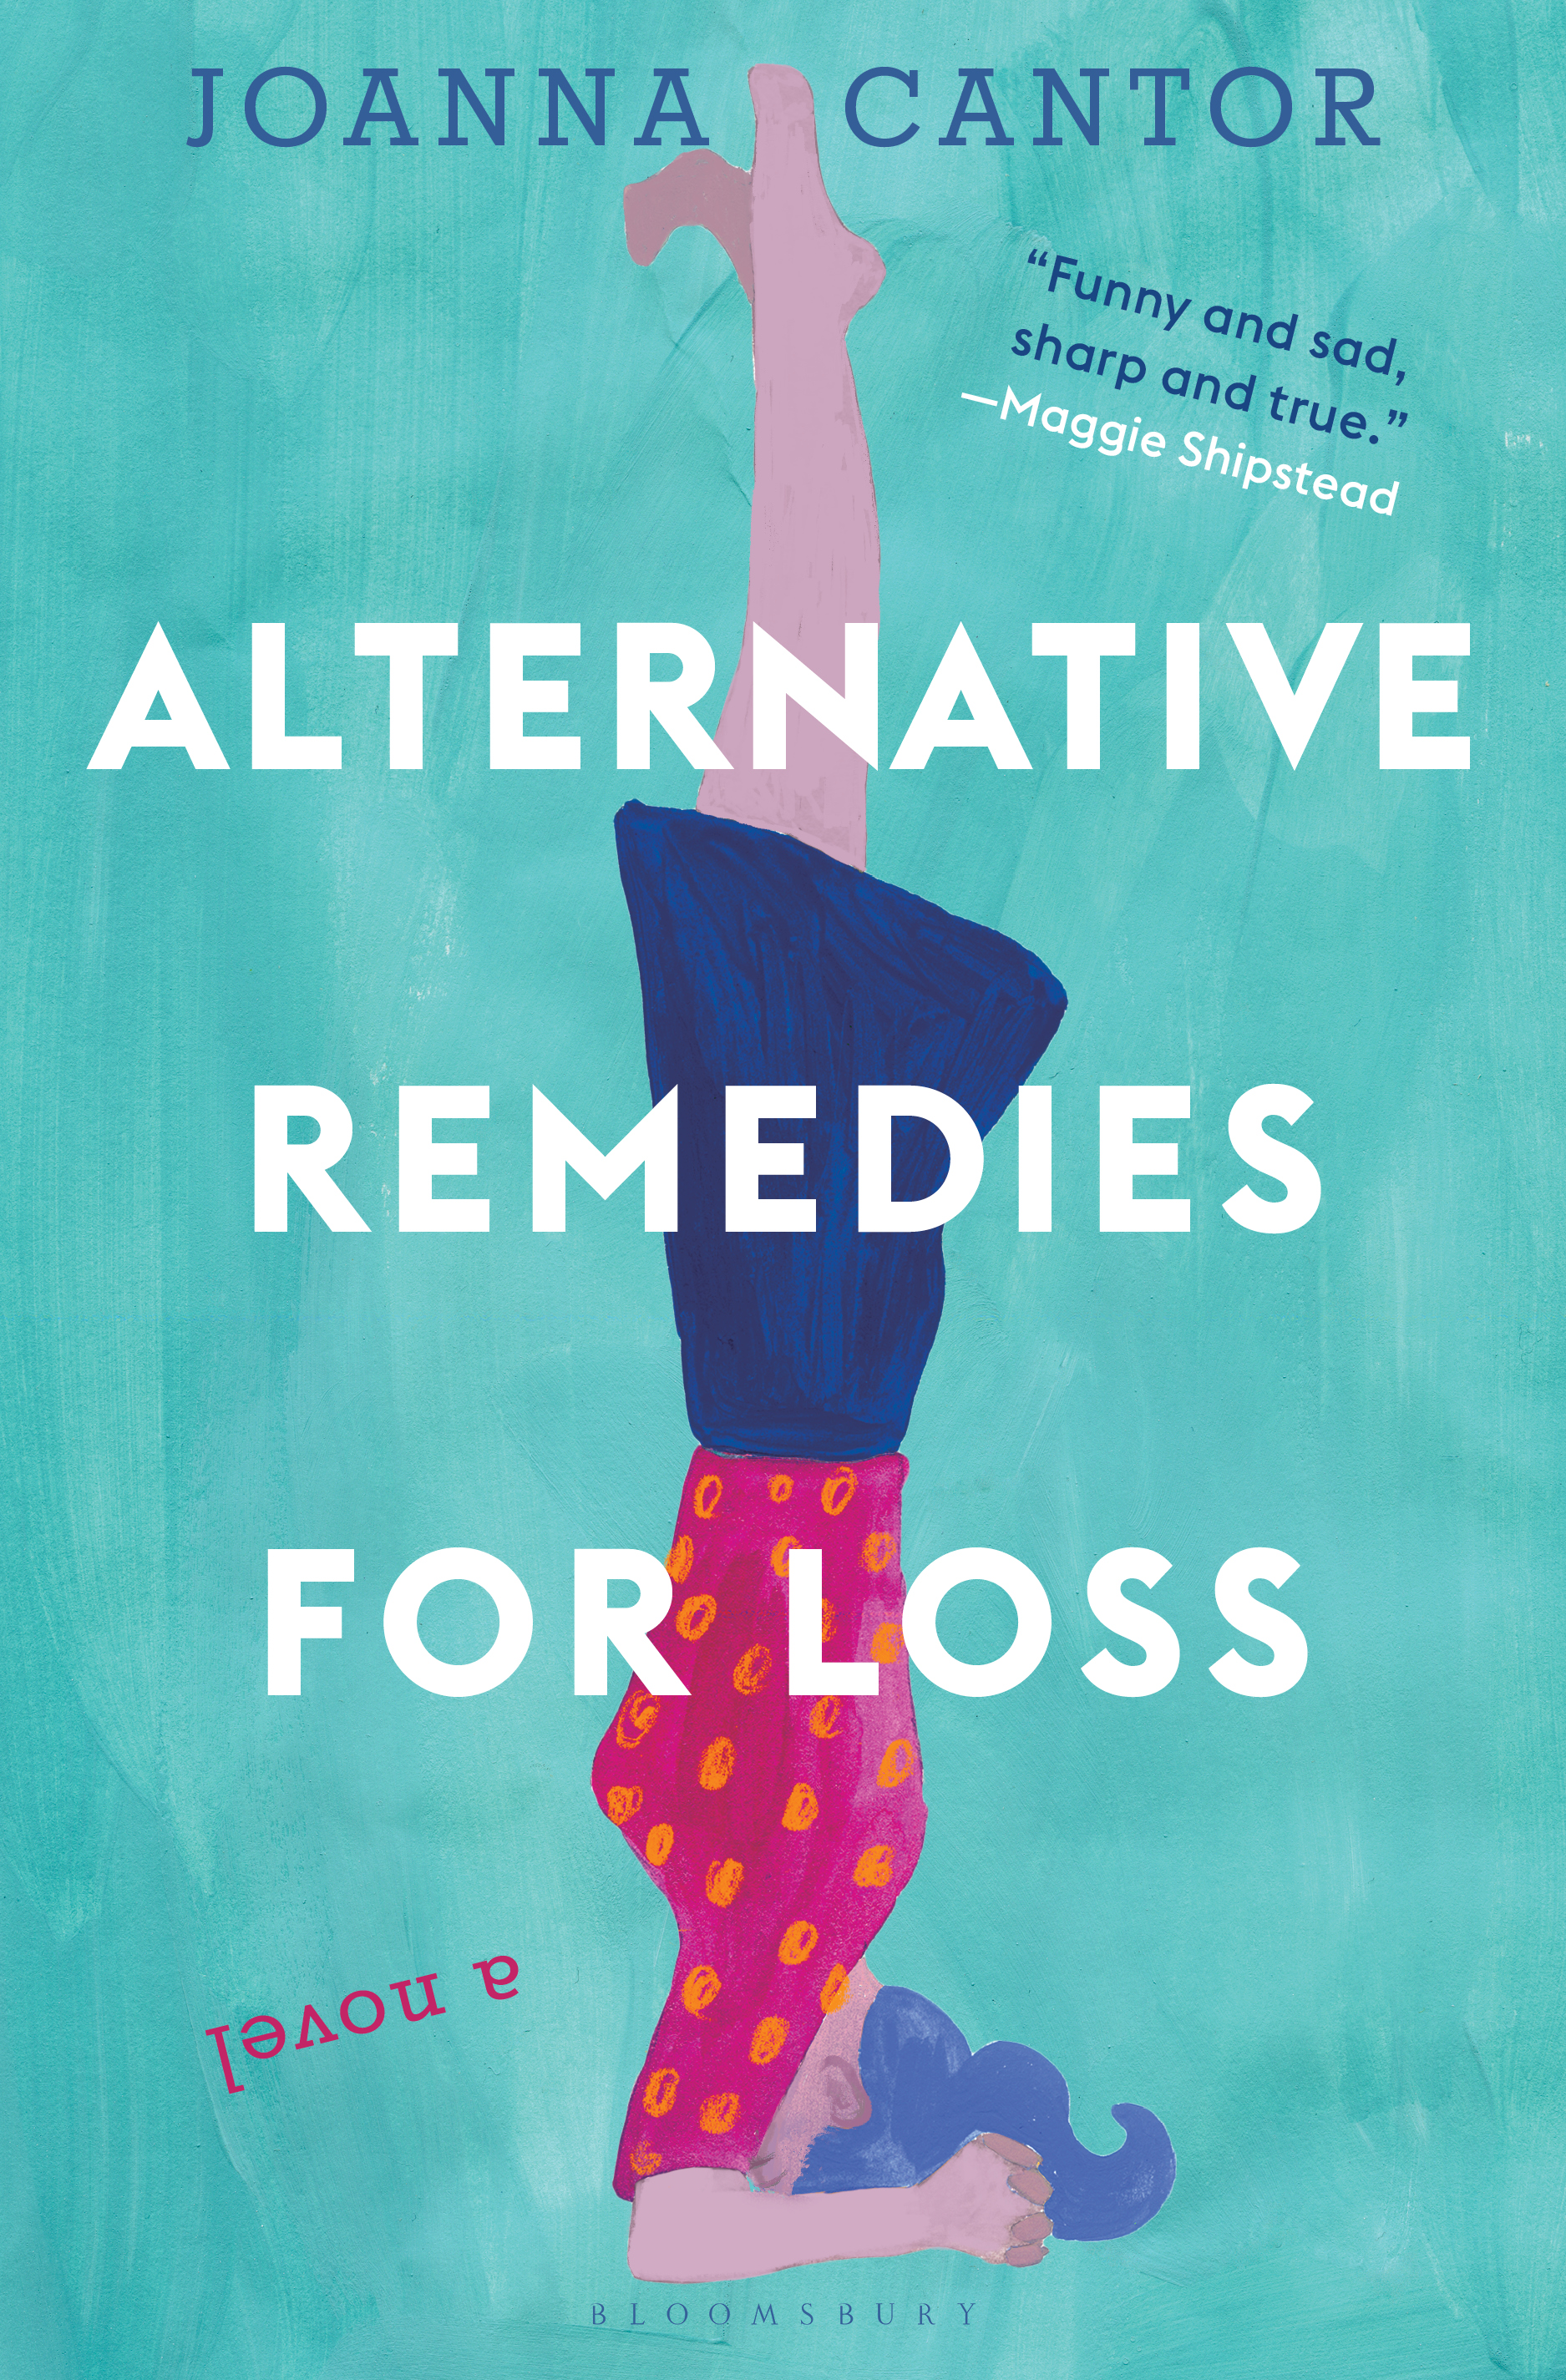 Image result for alternative remedies for loss book